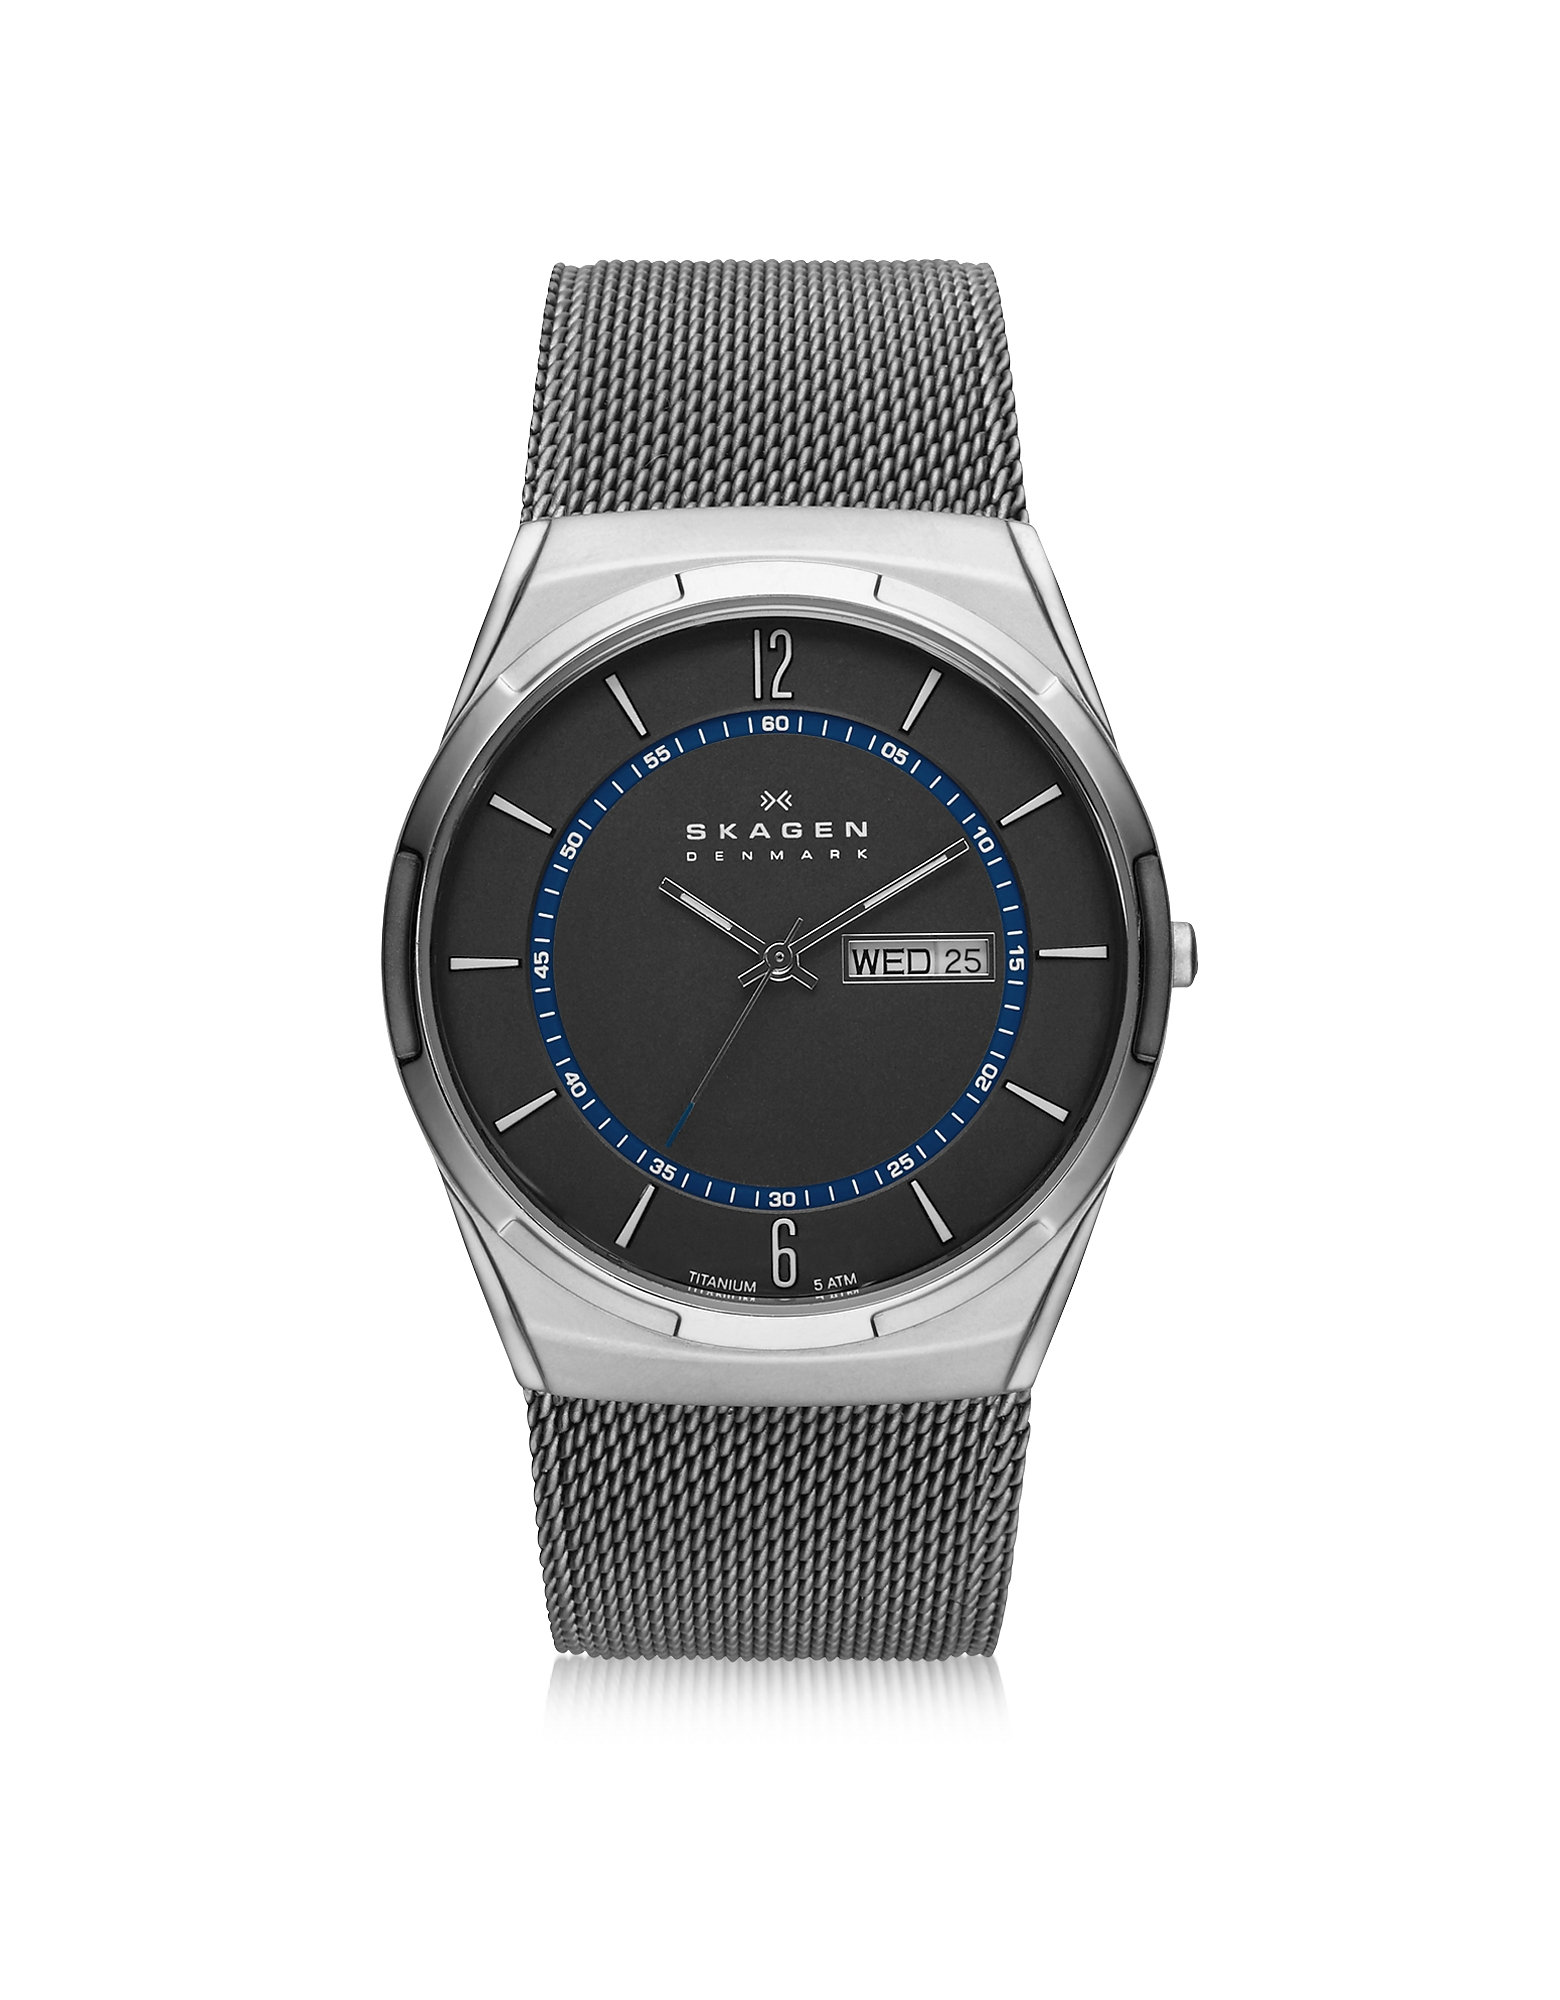 Skagen Men's Watches, Melbye Gray & Blue Titanium Men's Watch